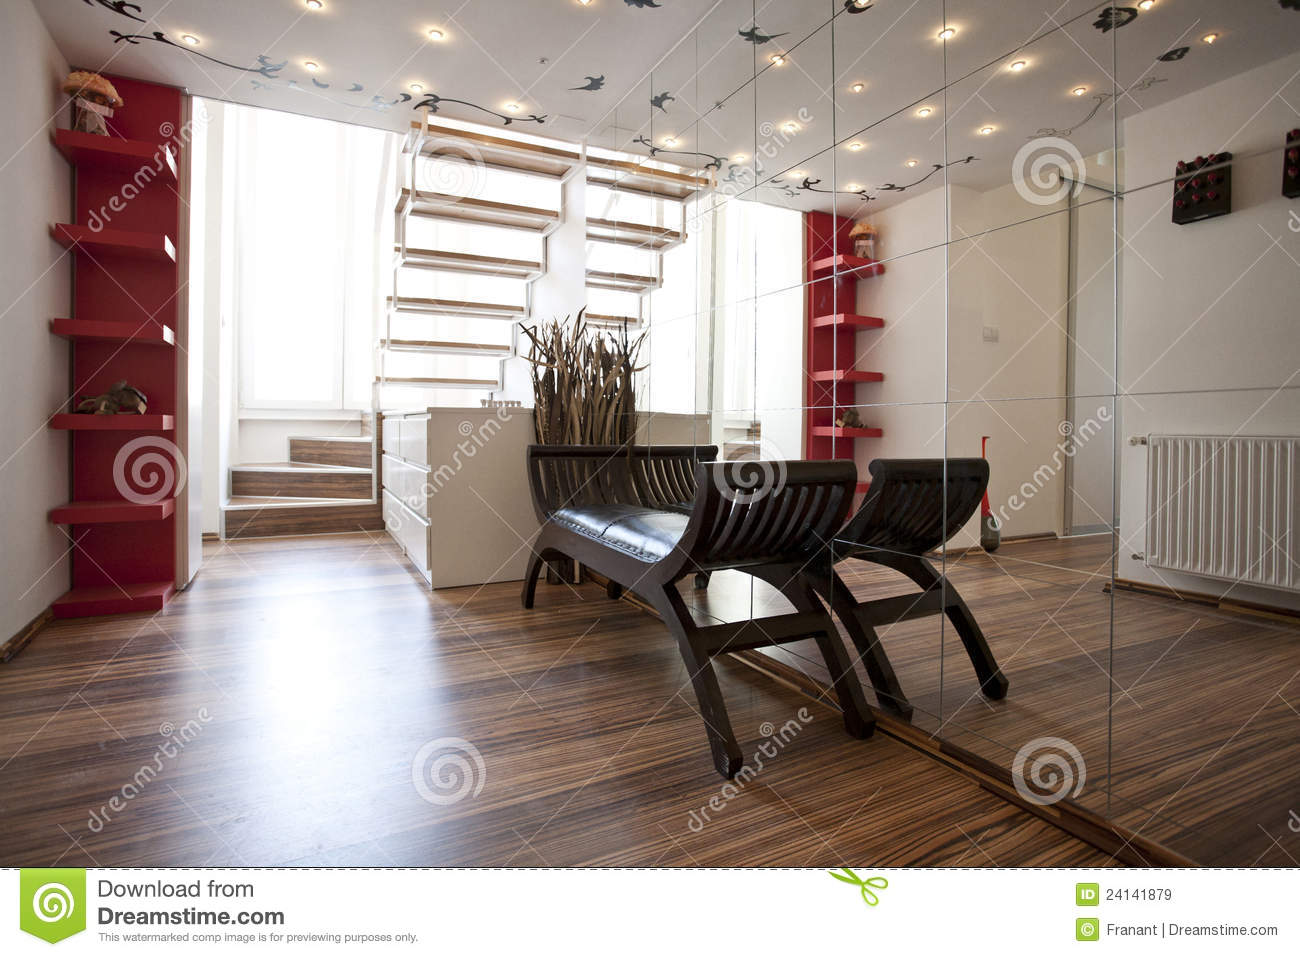 Home lobby interior design royalty free stock images for Home design images